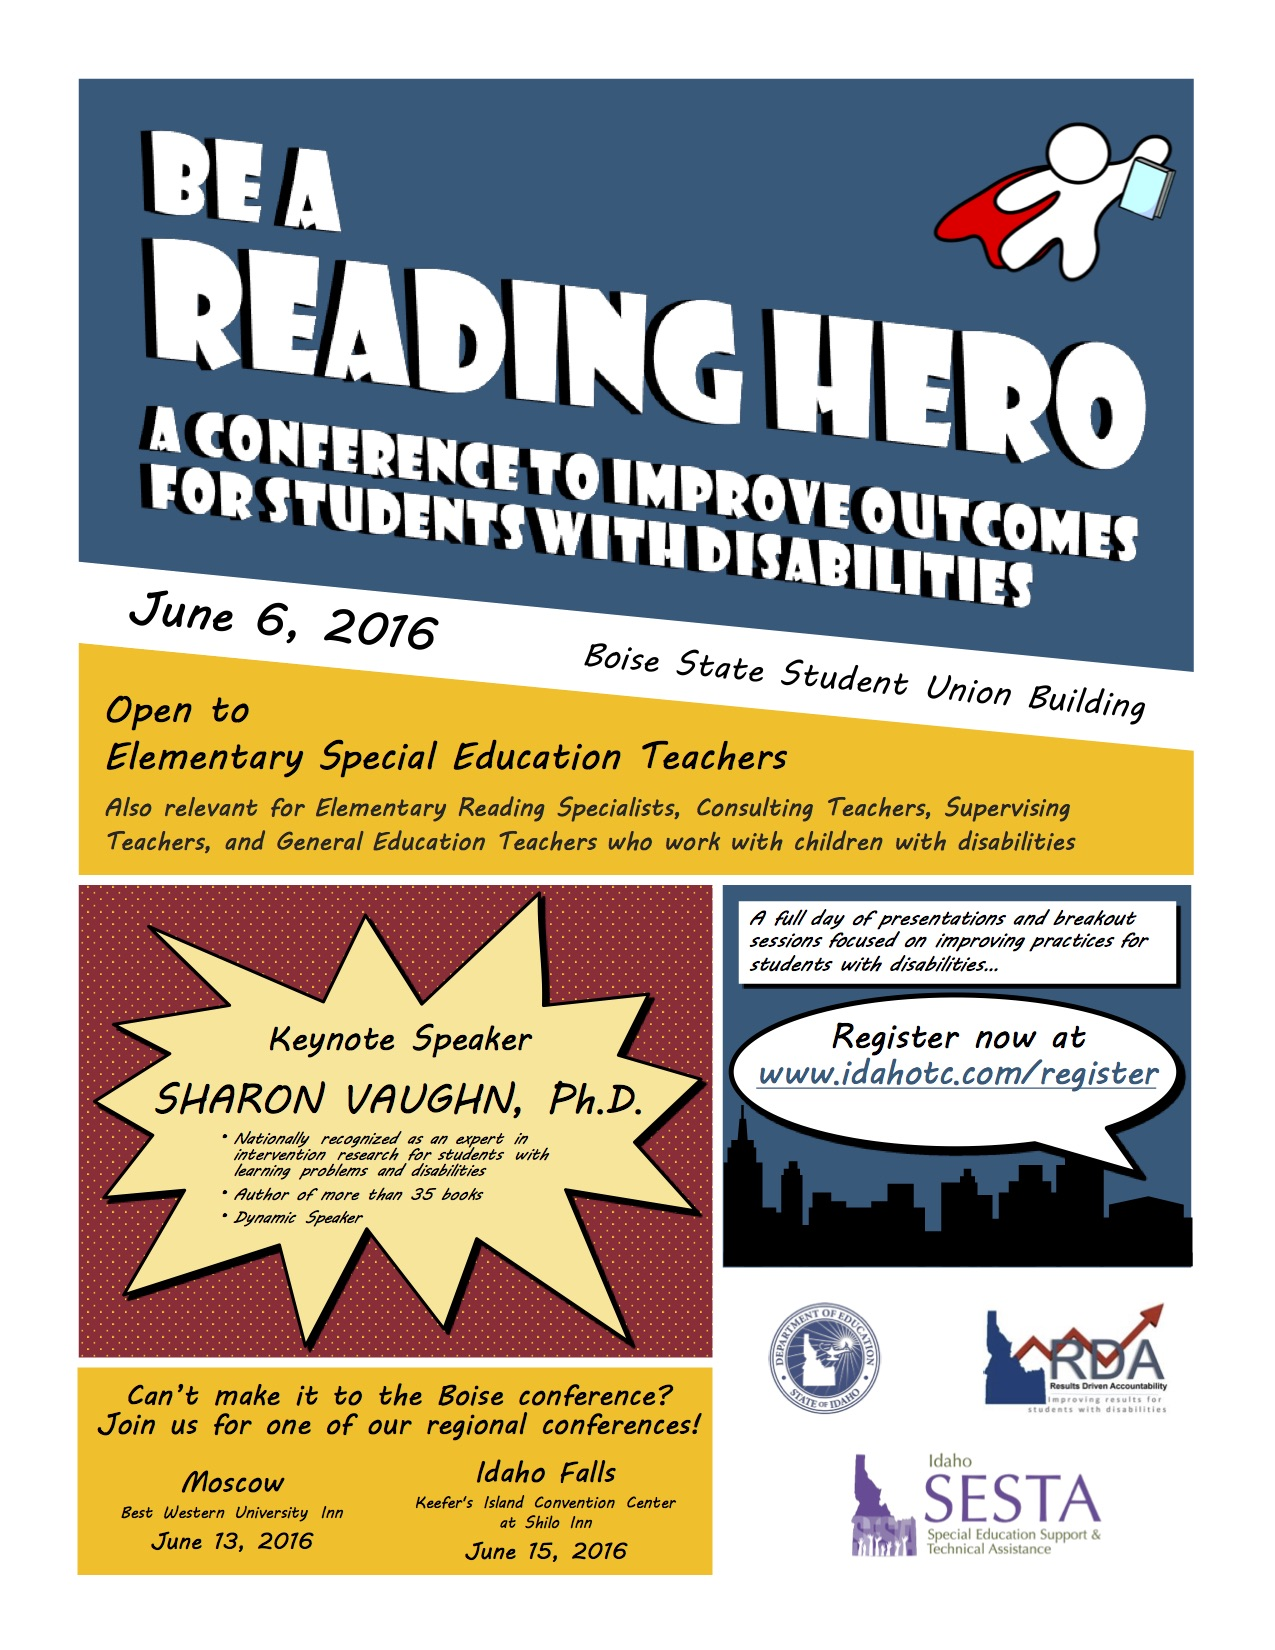 Be a Reading Hero 2016 Flyer Pic